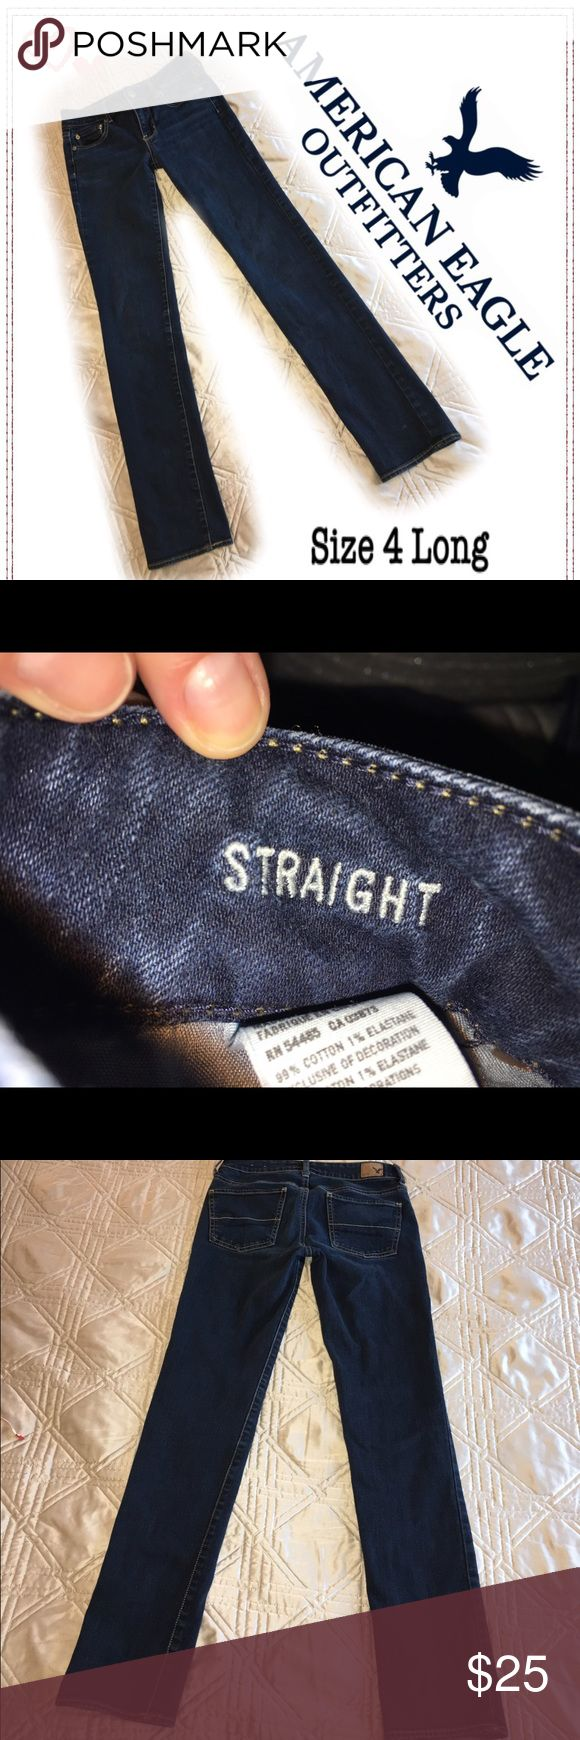 Excellent condition straight cut jeans Dark blue straight cut American Eagle jeans in size 4 Long. Barely worn - slight scuffing at pant leg cuff but otherwise they look new! Super comfy - your go to jeans for dressing up or dressing down :-) American Eagle Outfitters Jeans Straight Leg